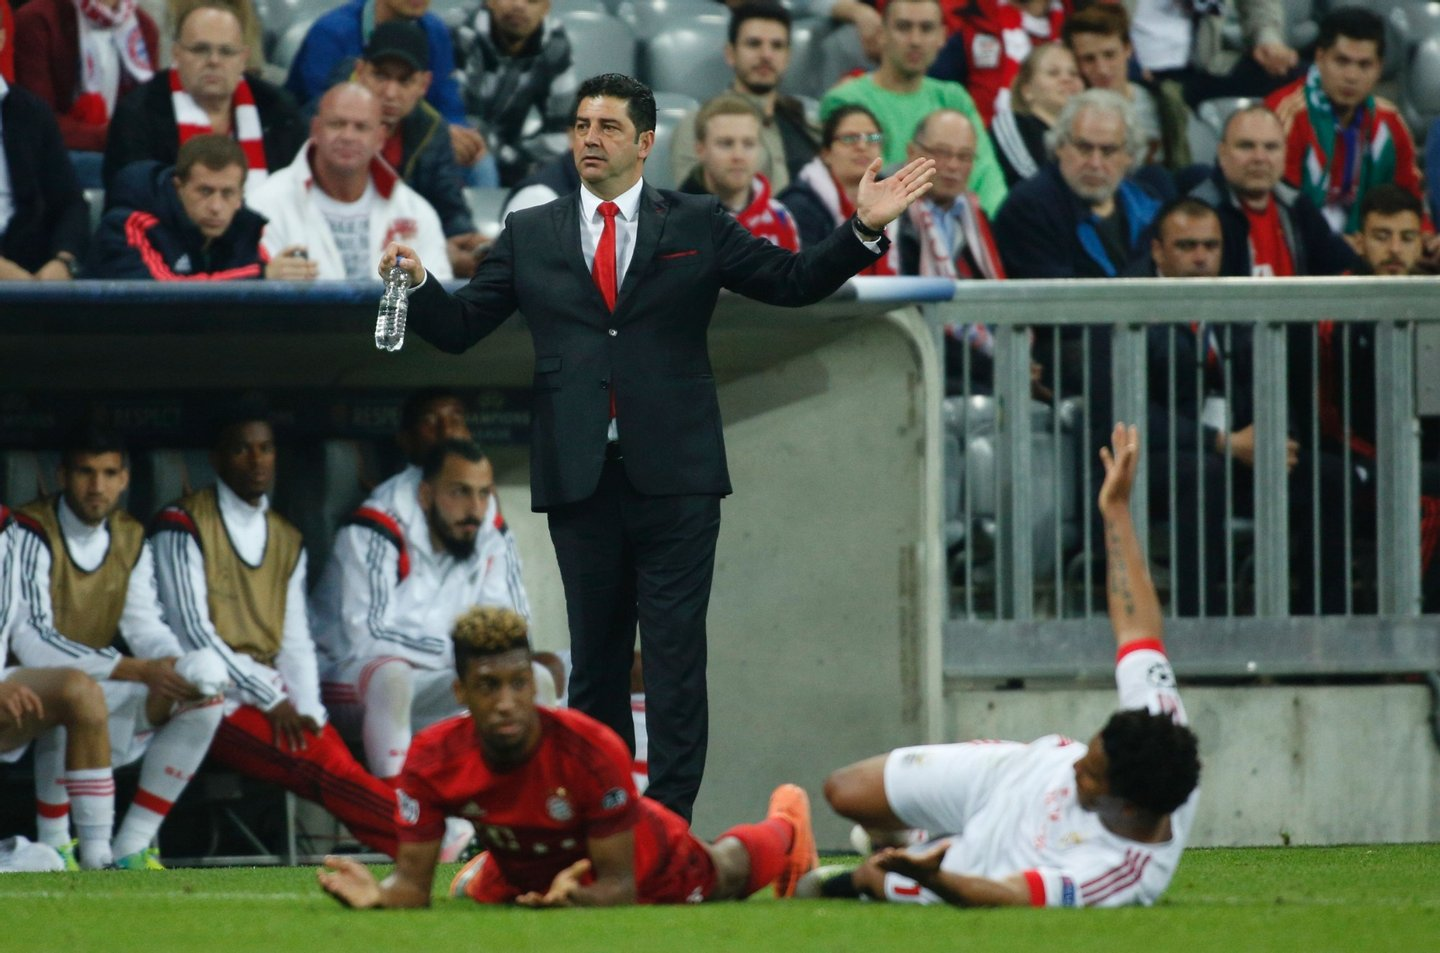 Benfica's coach Rui Vitoria (C) reacts during the Champions League quarter-final, first-leg football match between Bayern Munich and Benfica Lisbon in Munich, southern Germany, on April 5, 2016. Bayern Munich won the match 1-0. / AFP / ODD ANDERSEN (Photo credit should read ODD ANDERSEN/AFP/Getty Images)